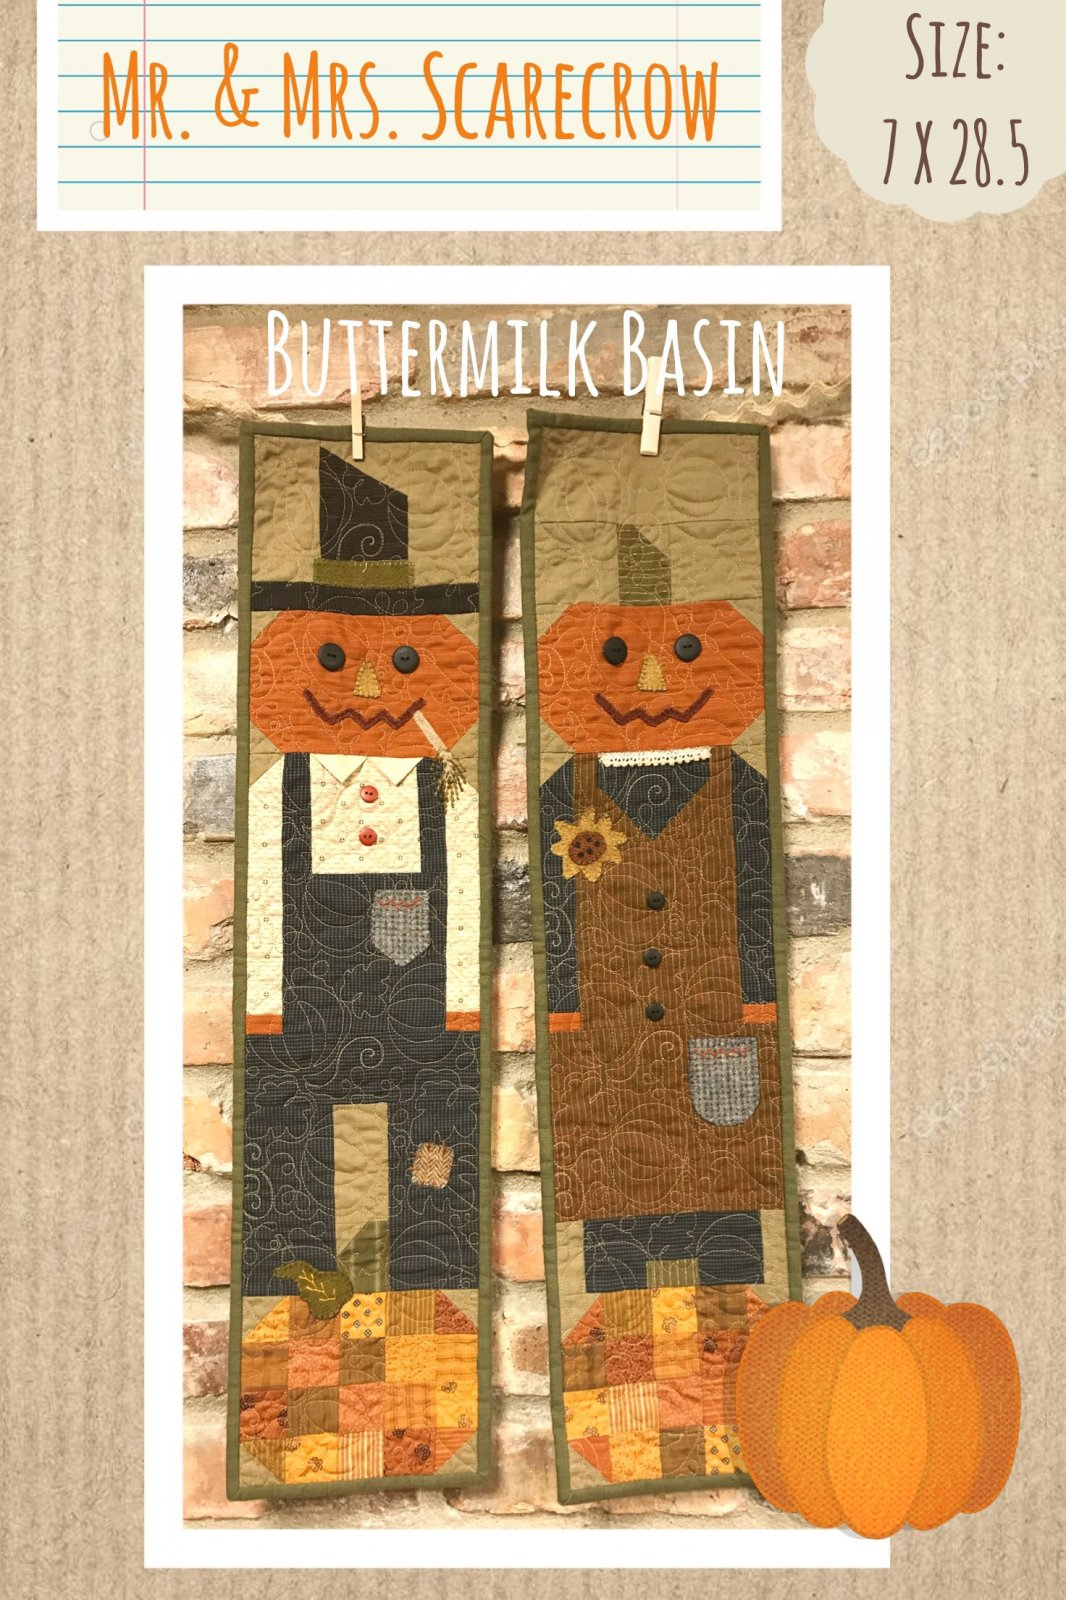 Mr. & Mrs. Scarecrow Pattern